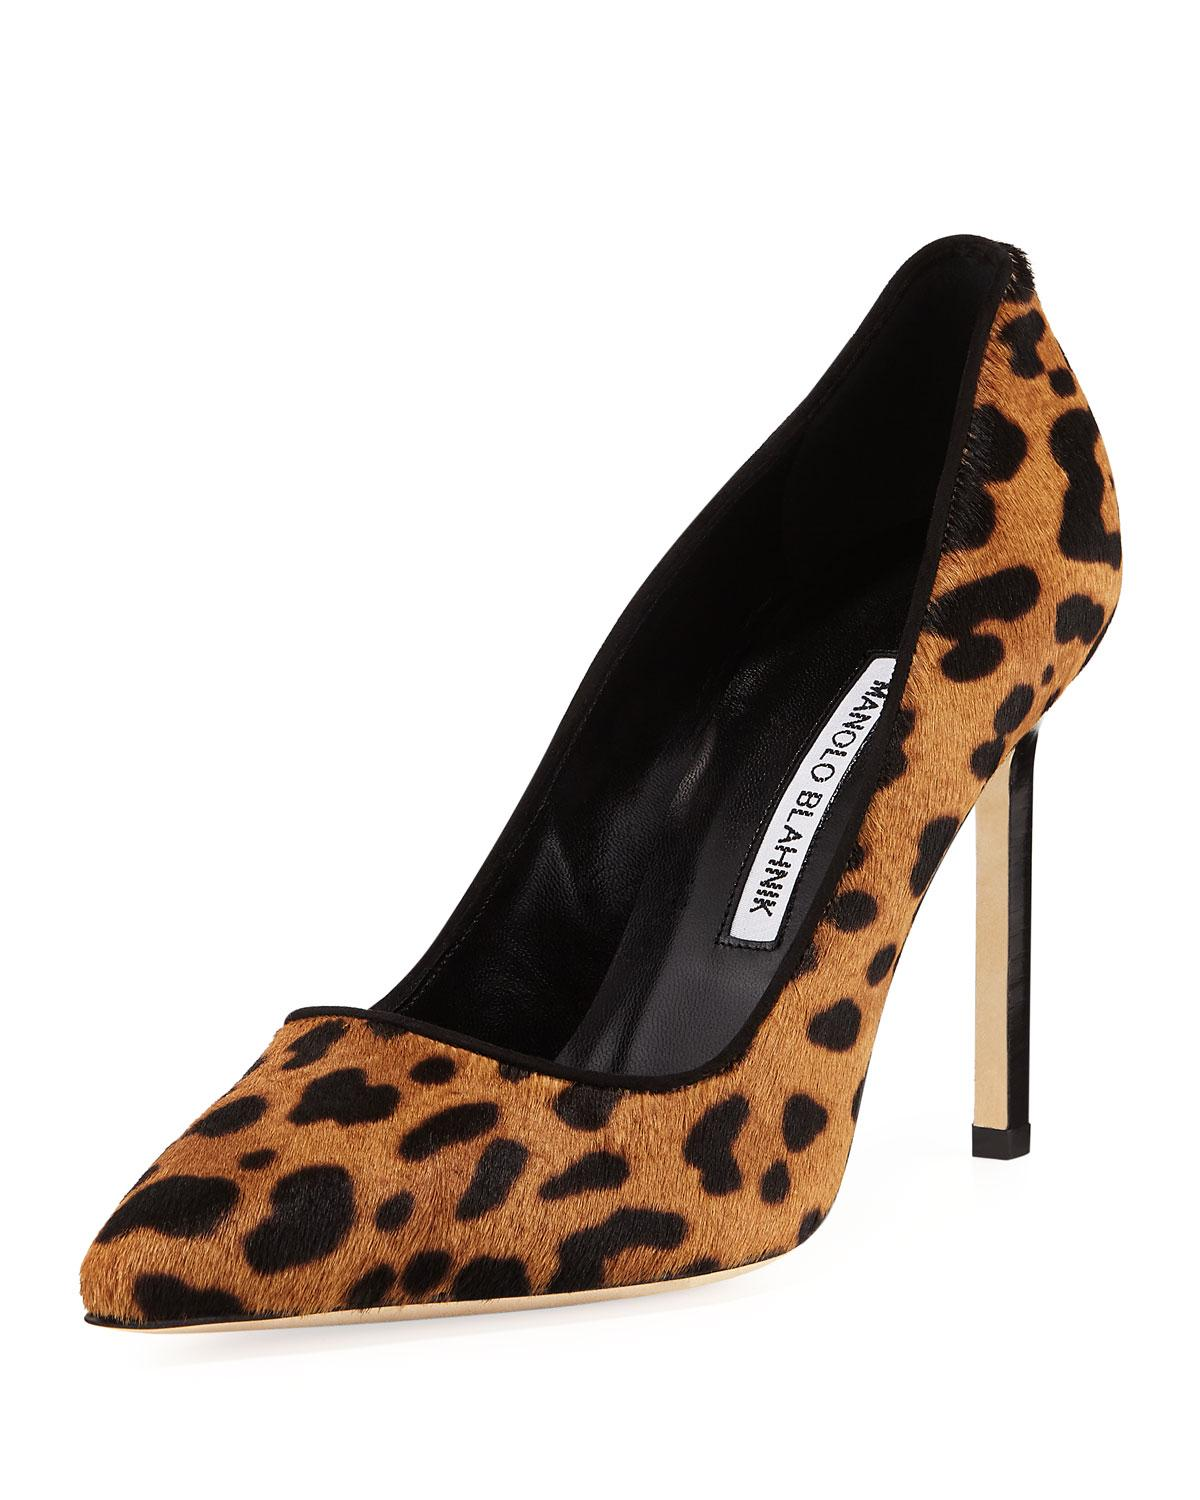 Manolo Blahnik Bb Calf Hair Fur 105Mm Pumps In Leopard